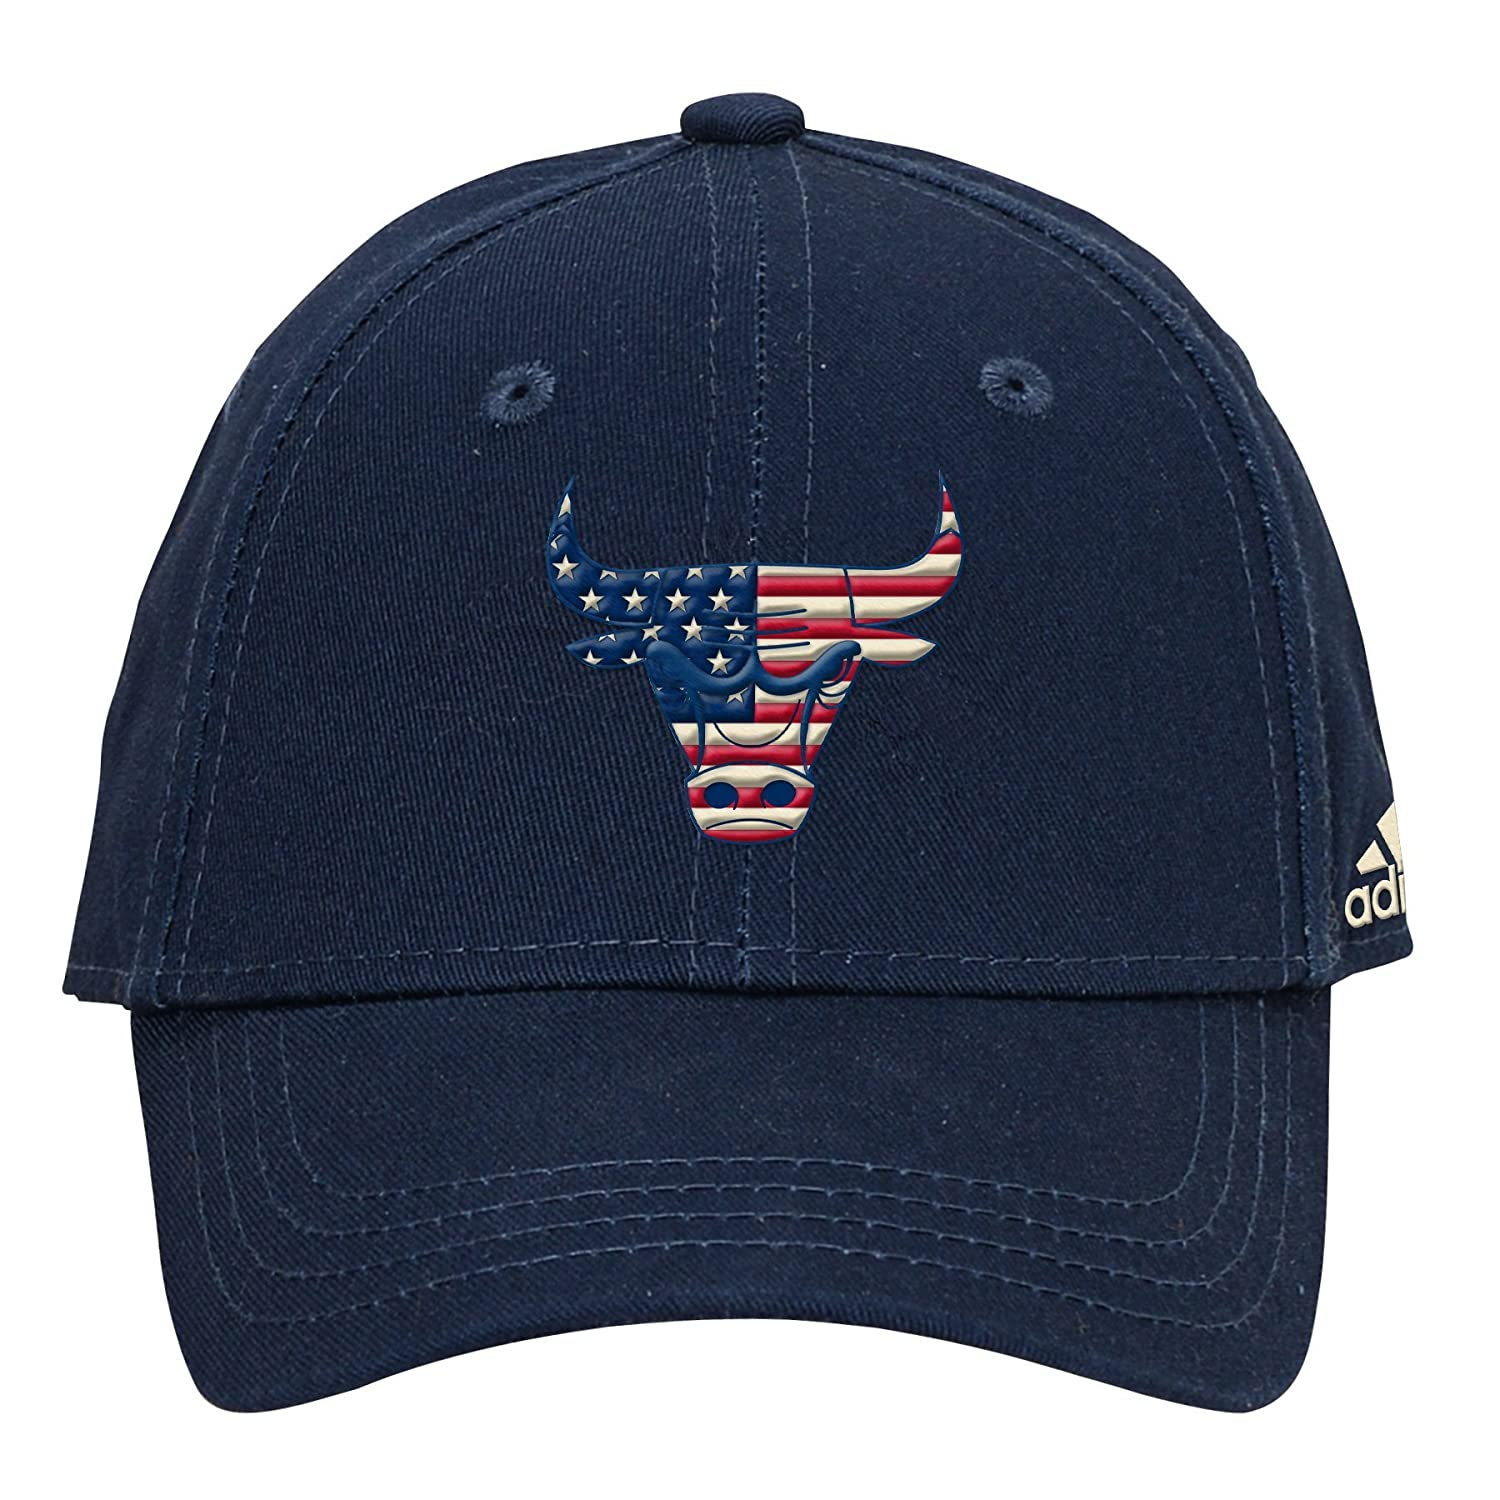 542e1e9a9f2 Amazon.com   NBA Youth Boys 8-20 Patriotic Logo Structured Adjustable Hat- Navy-1 Size